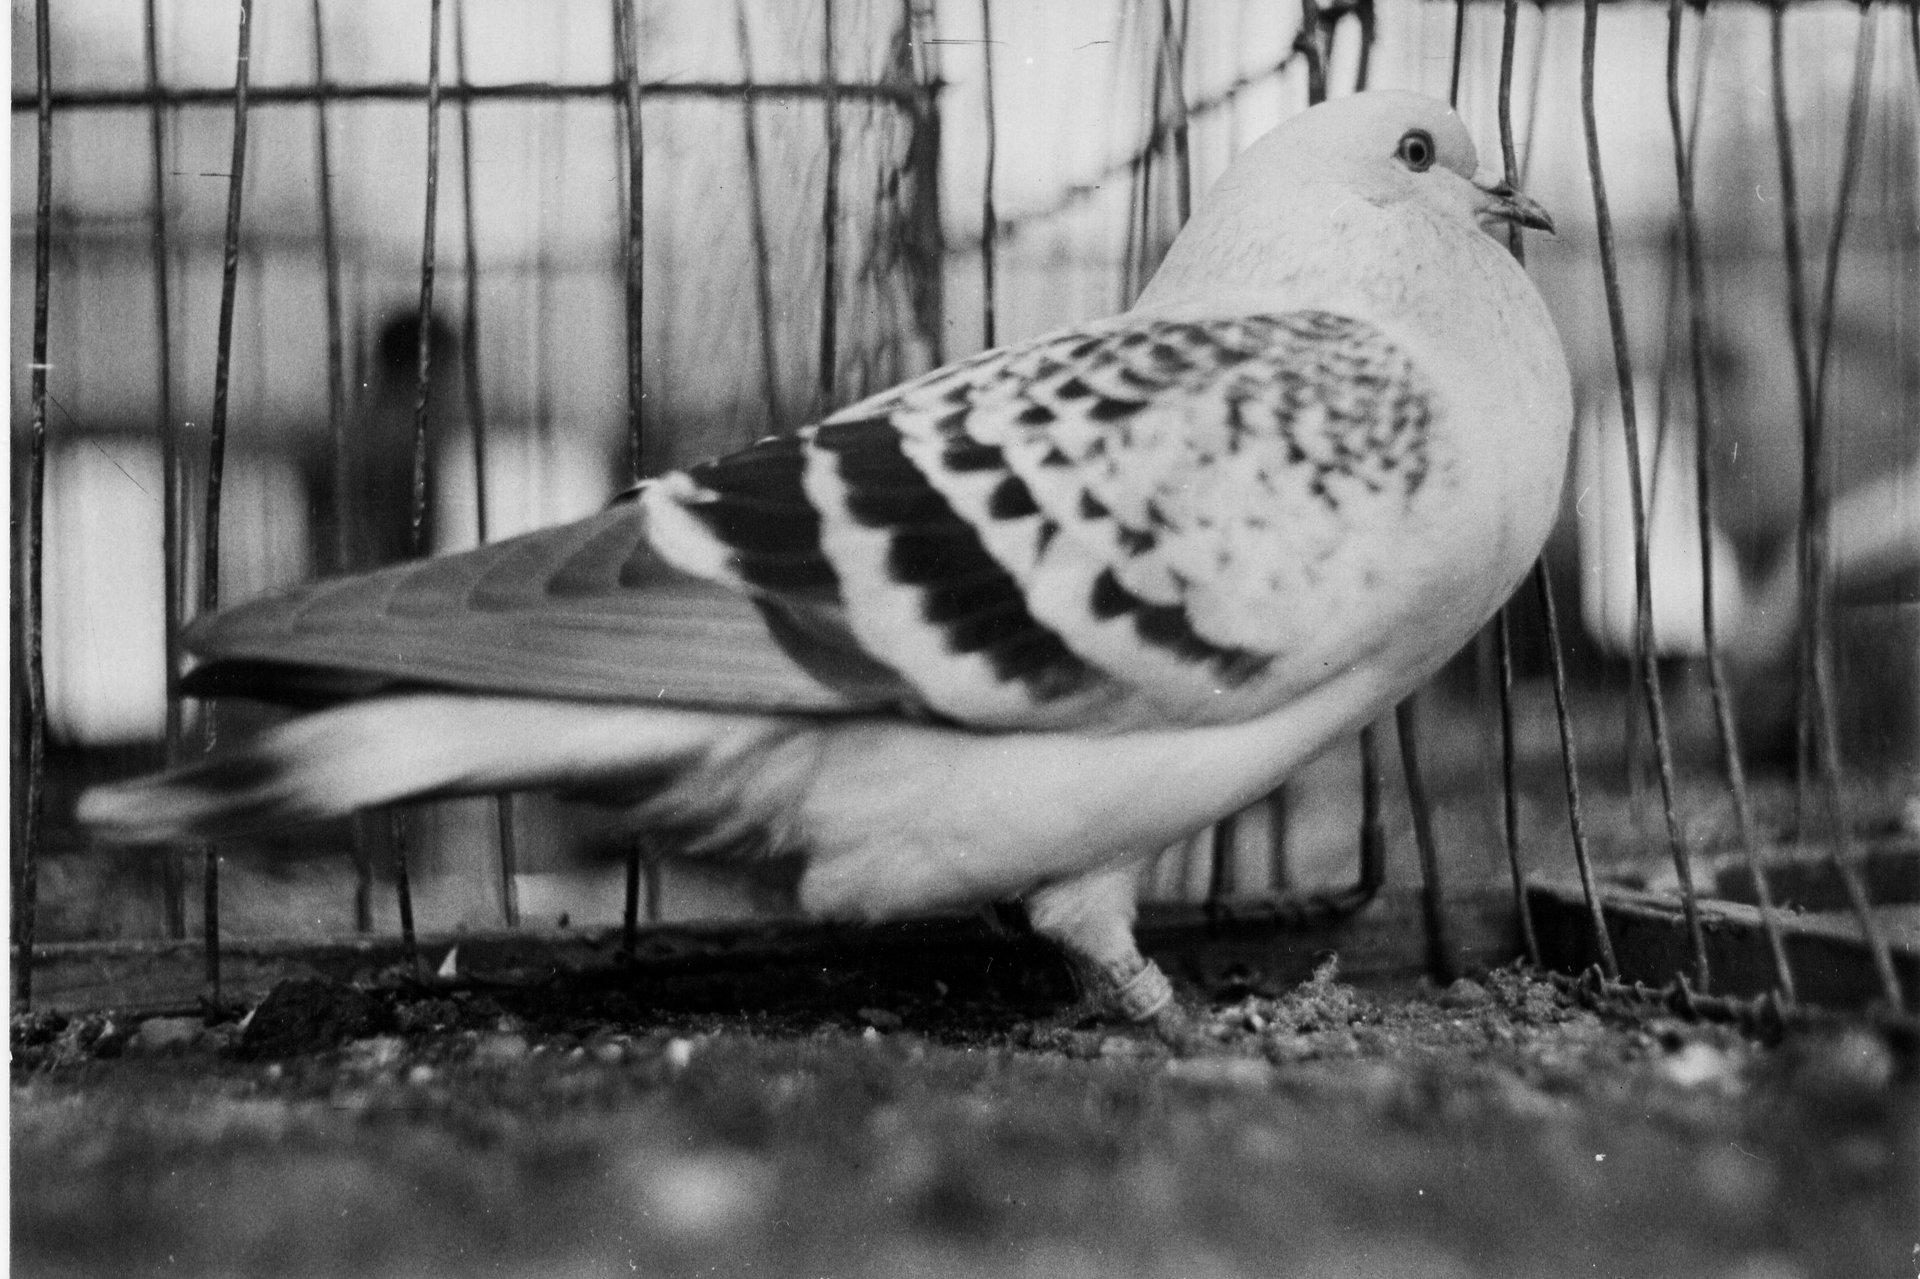 Petra Feriancová, Series Creator – From the Archive of O. Ferianc, New Breeds 1949-1952, 2008, (86/112)